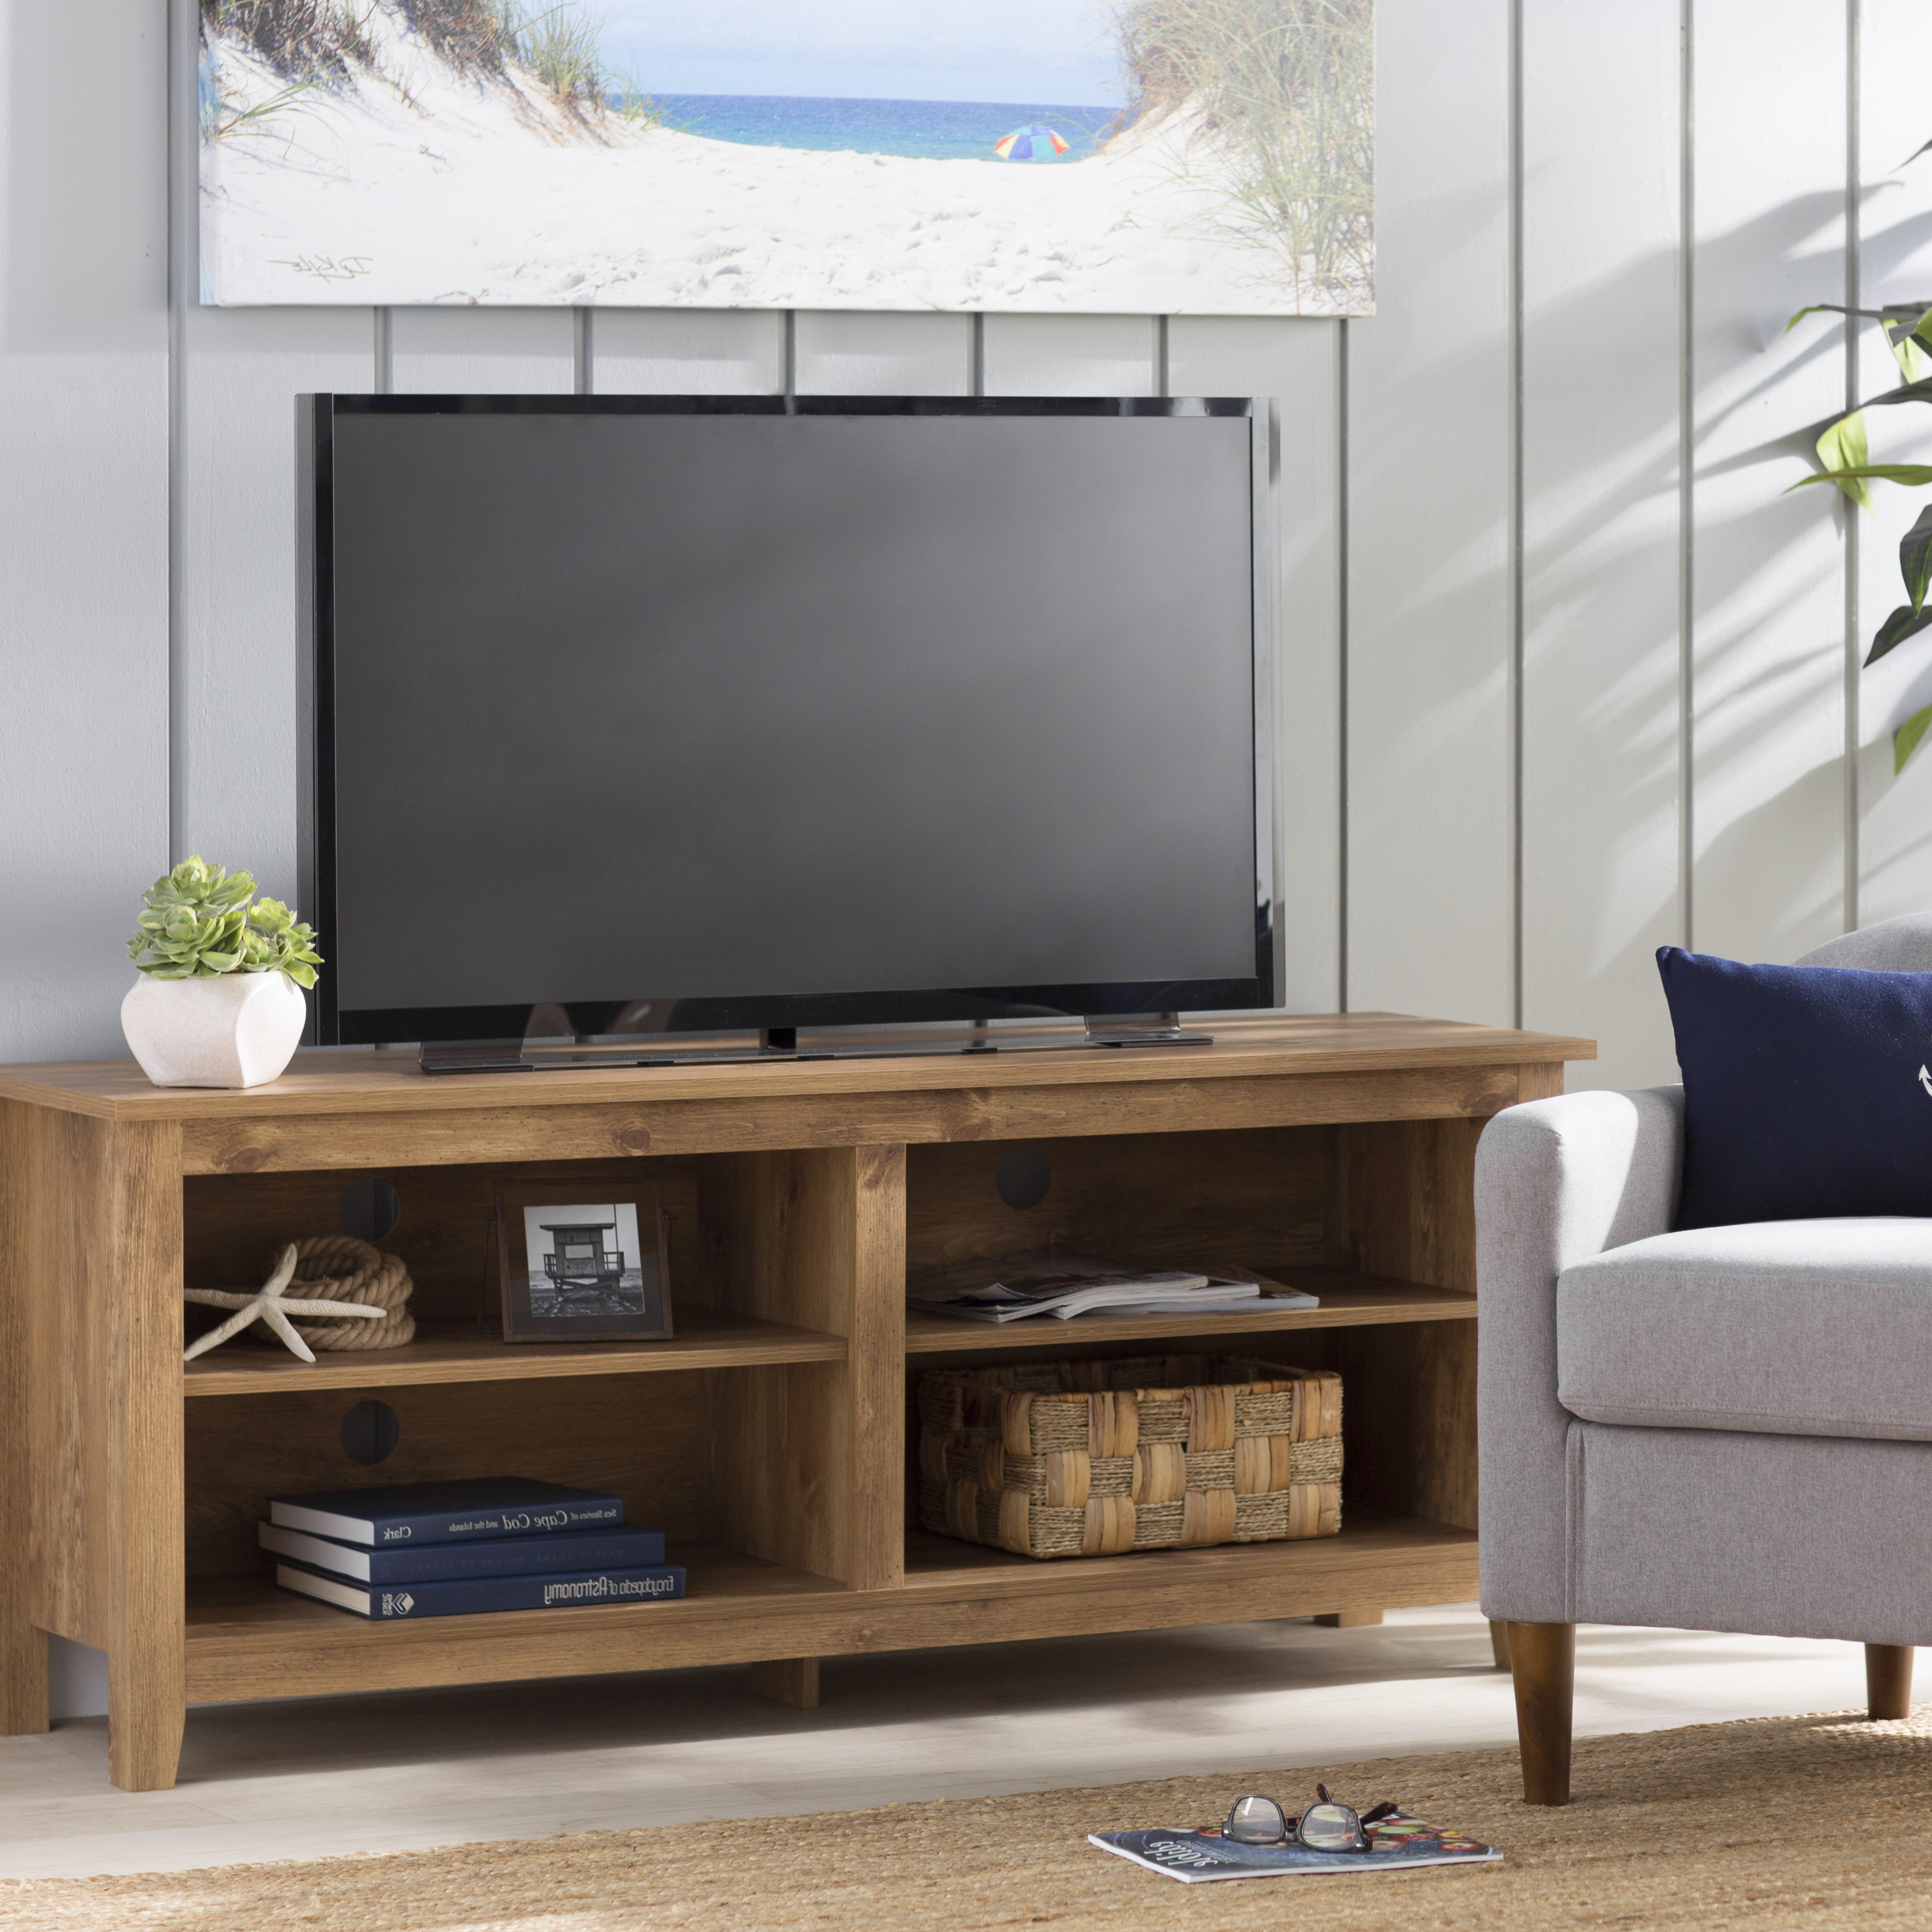 Wayfair Intended For Ducar 64 Inch Tv Stands (View 18 of 20)